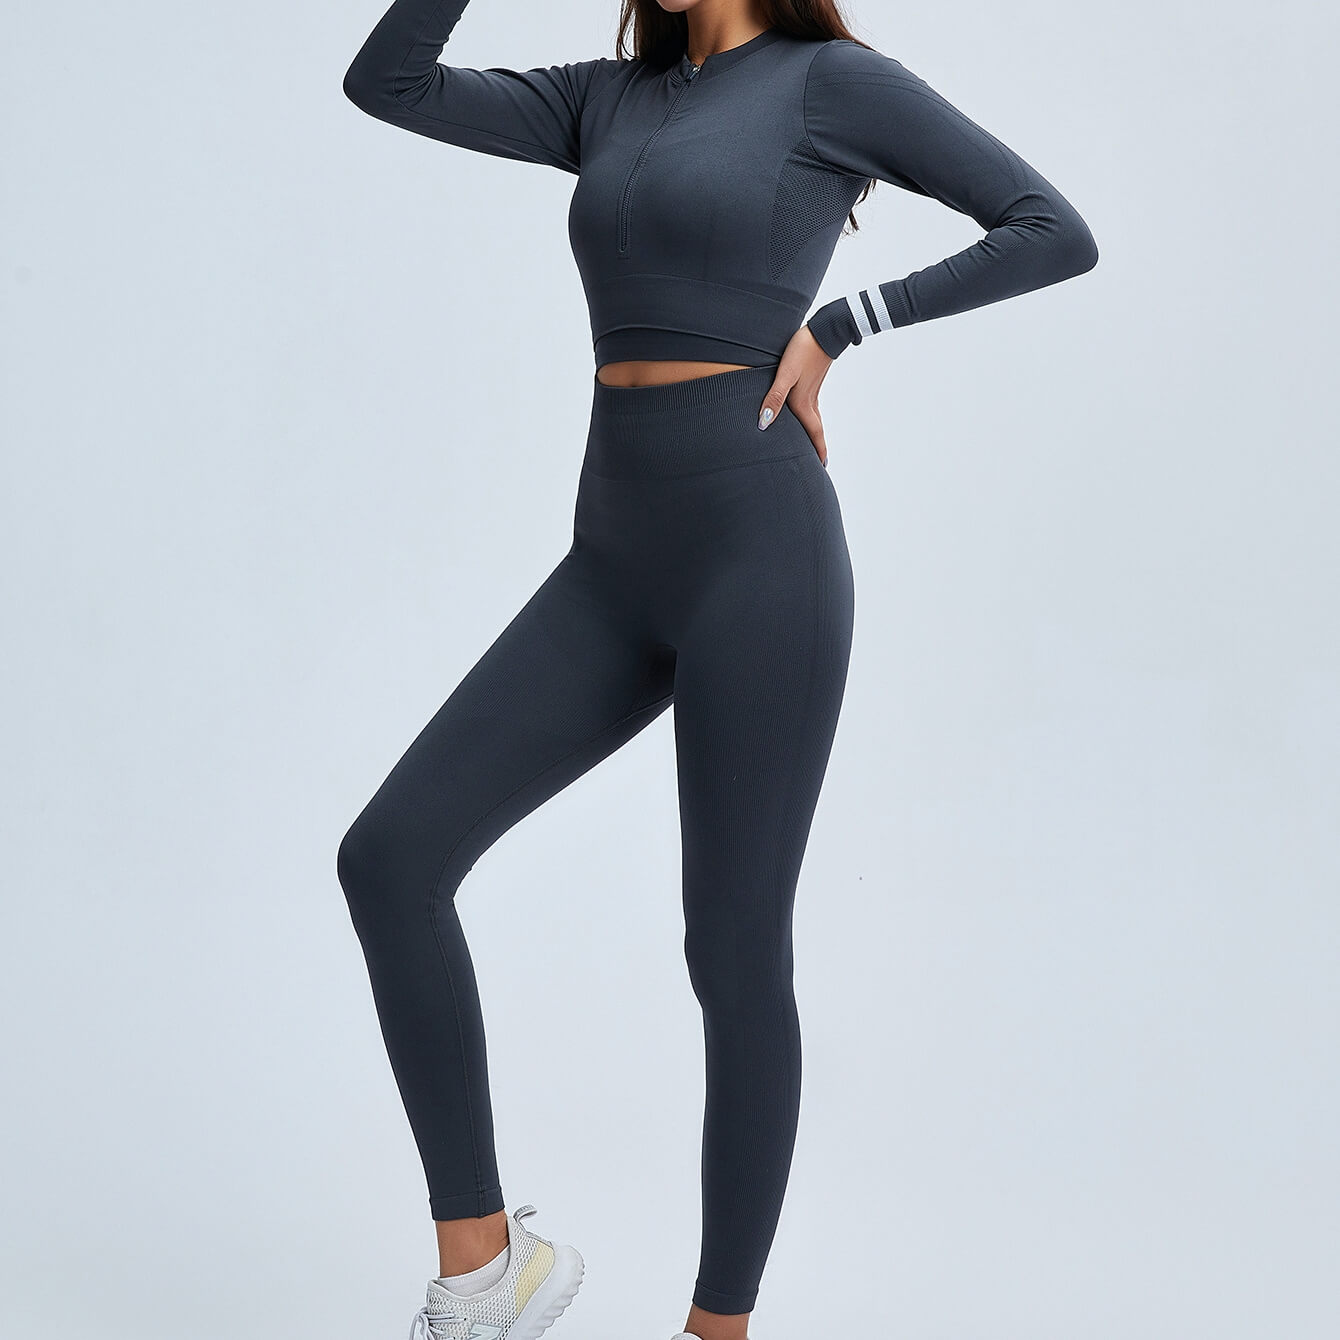 Get hyped for your workout session in this Power Up Front Zip Crop Top & Leggings Set - Charcoal. This matching workout set comes with a long sleeve crop top and a pair of leggings. Long sleeve crop top features zip up front and long ribbed cuffs with stripe details. Leggings are high-rise fitted with seamless front. This form-fitting 2 piece workout set is perfect for all sorts of activities from yoga to cardio to street.